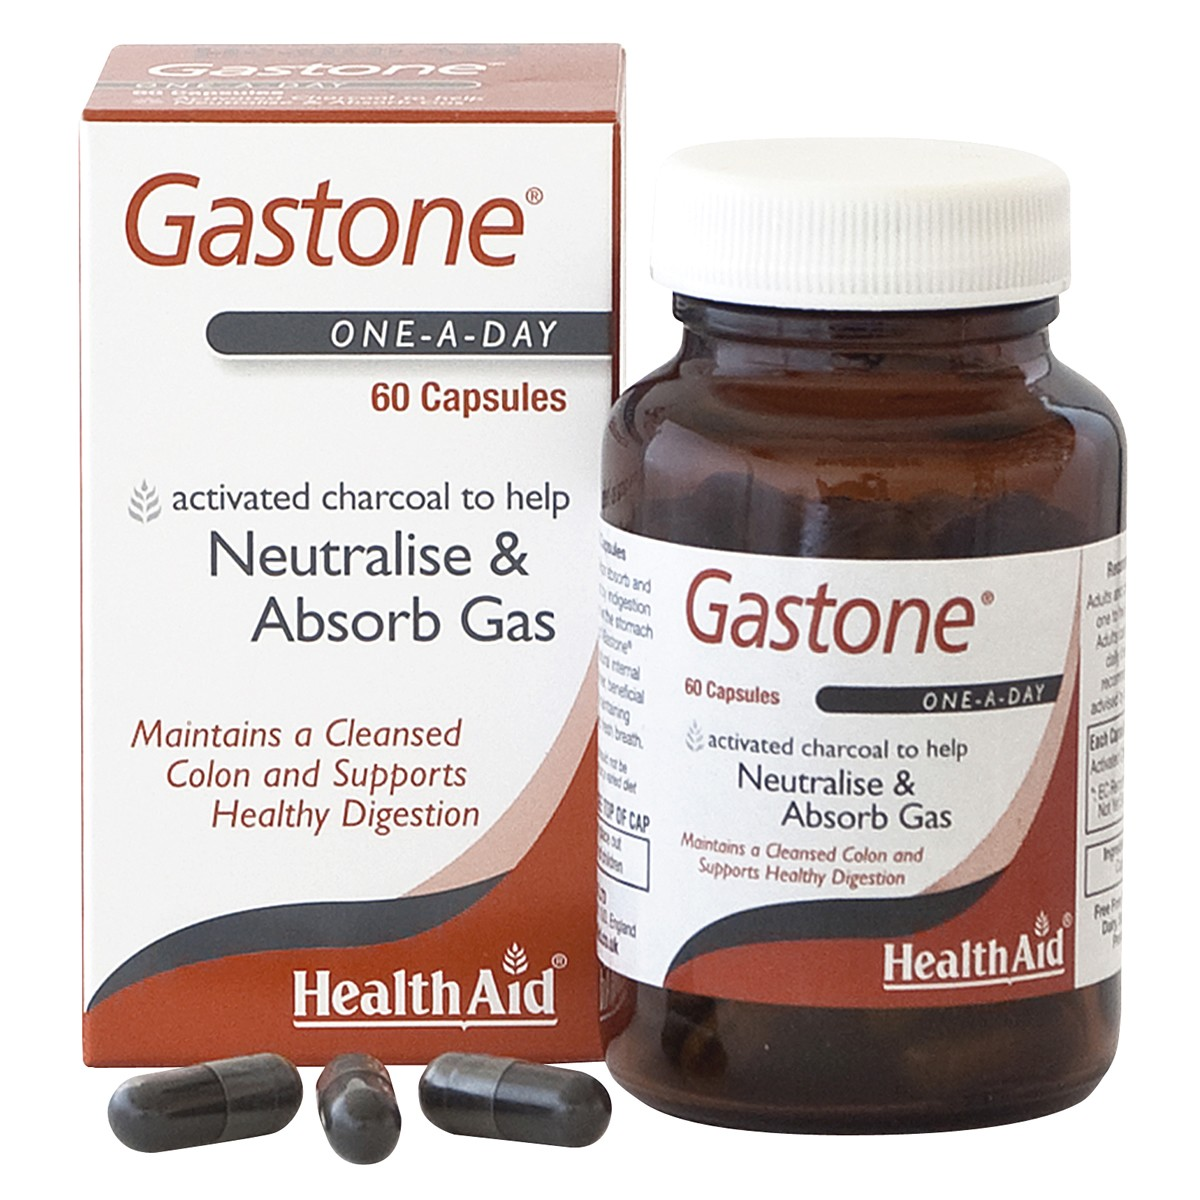 HealthAid Gastone (Activated Charcoal)